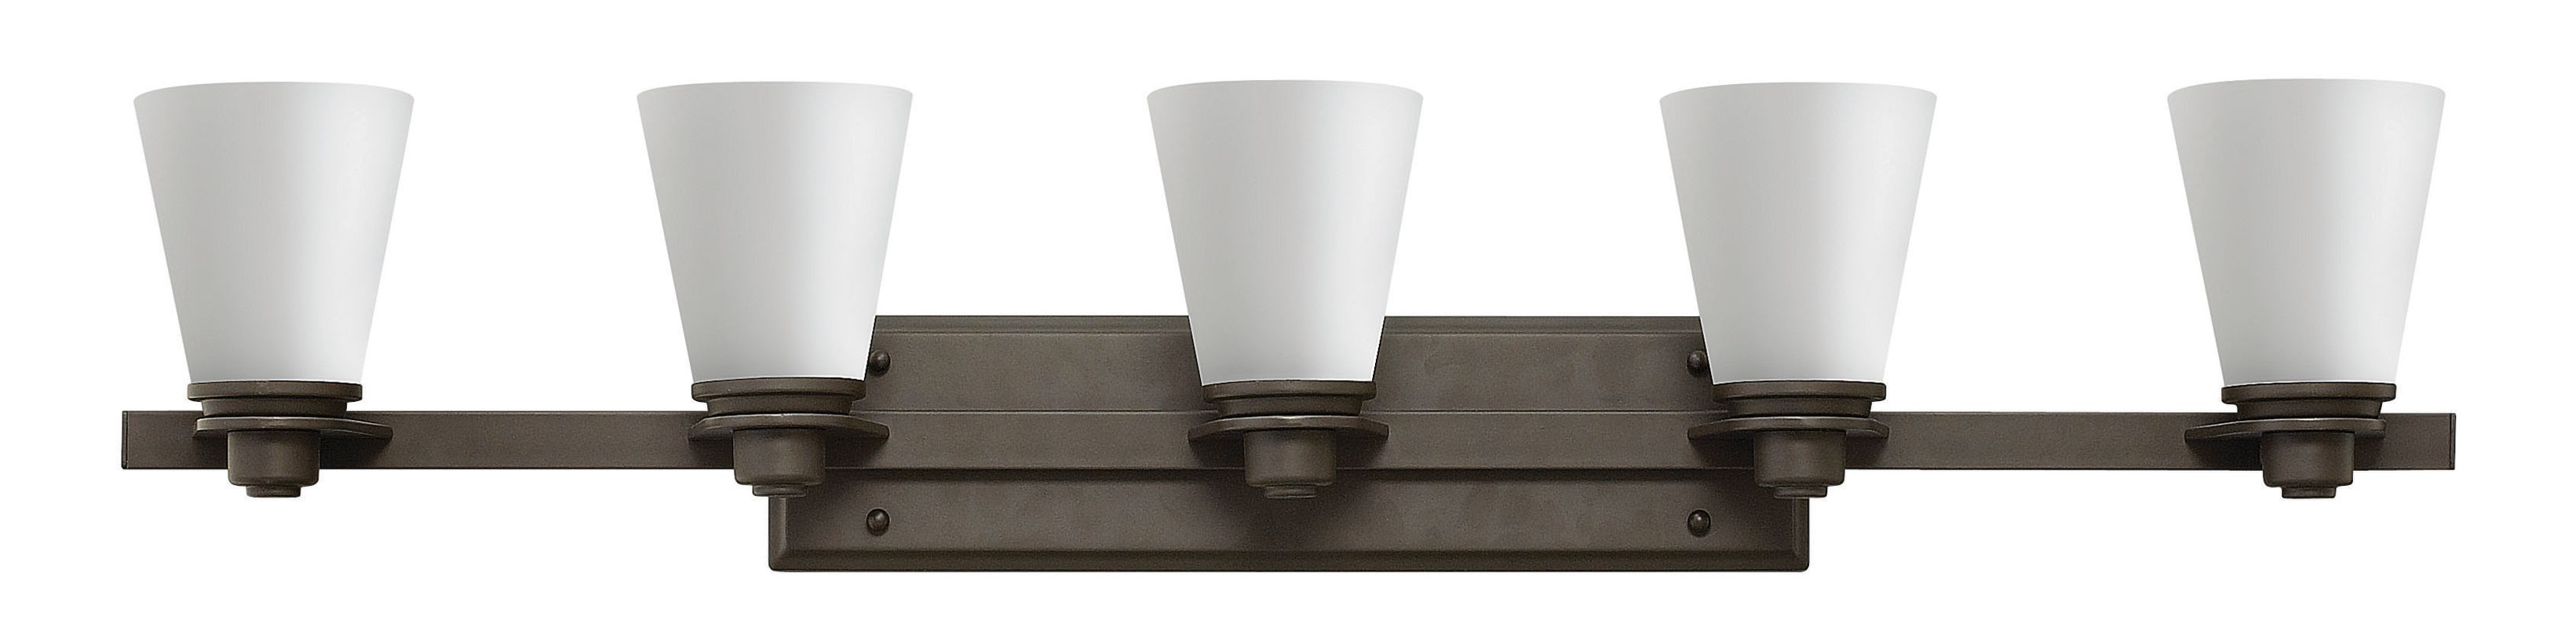 Hinkley Lighting 5555 5 Light Bathroom Vanity Light from the Avon Sale $339.00 ITEM#: 2635569 MODEL# :5555KZ UPC#: 640665555523 :